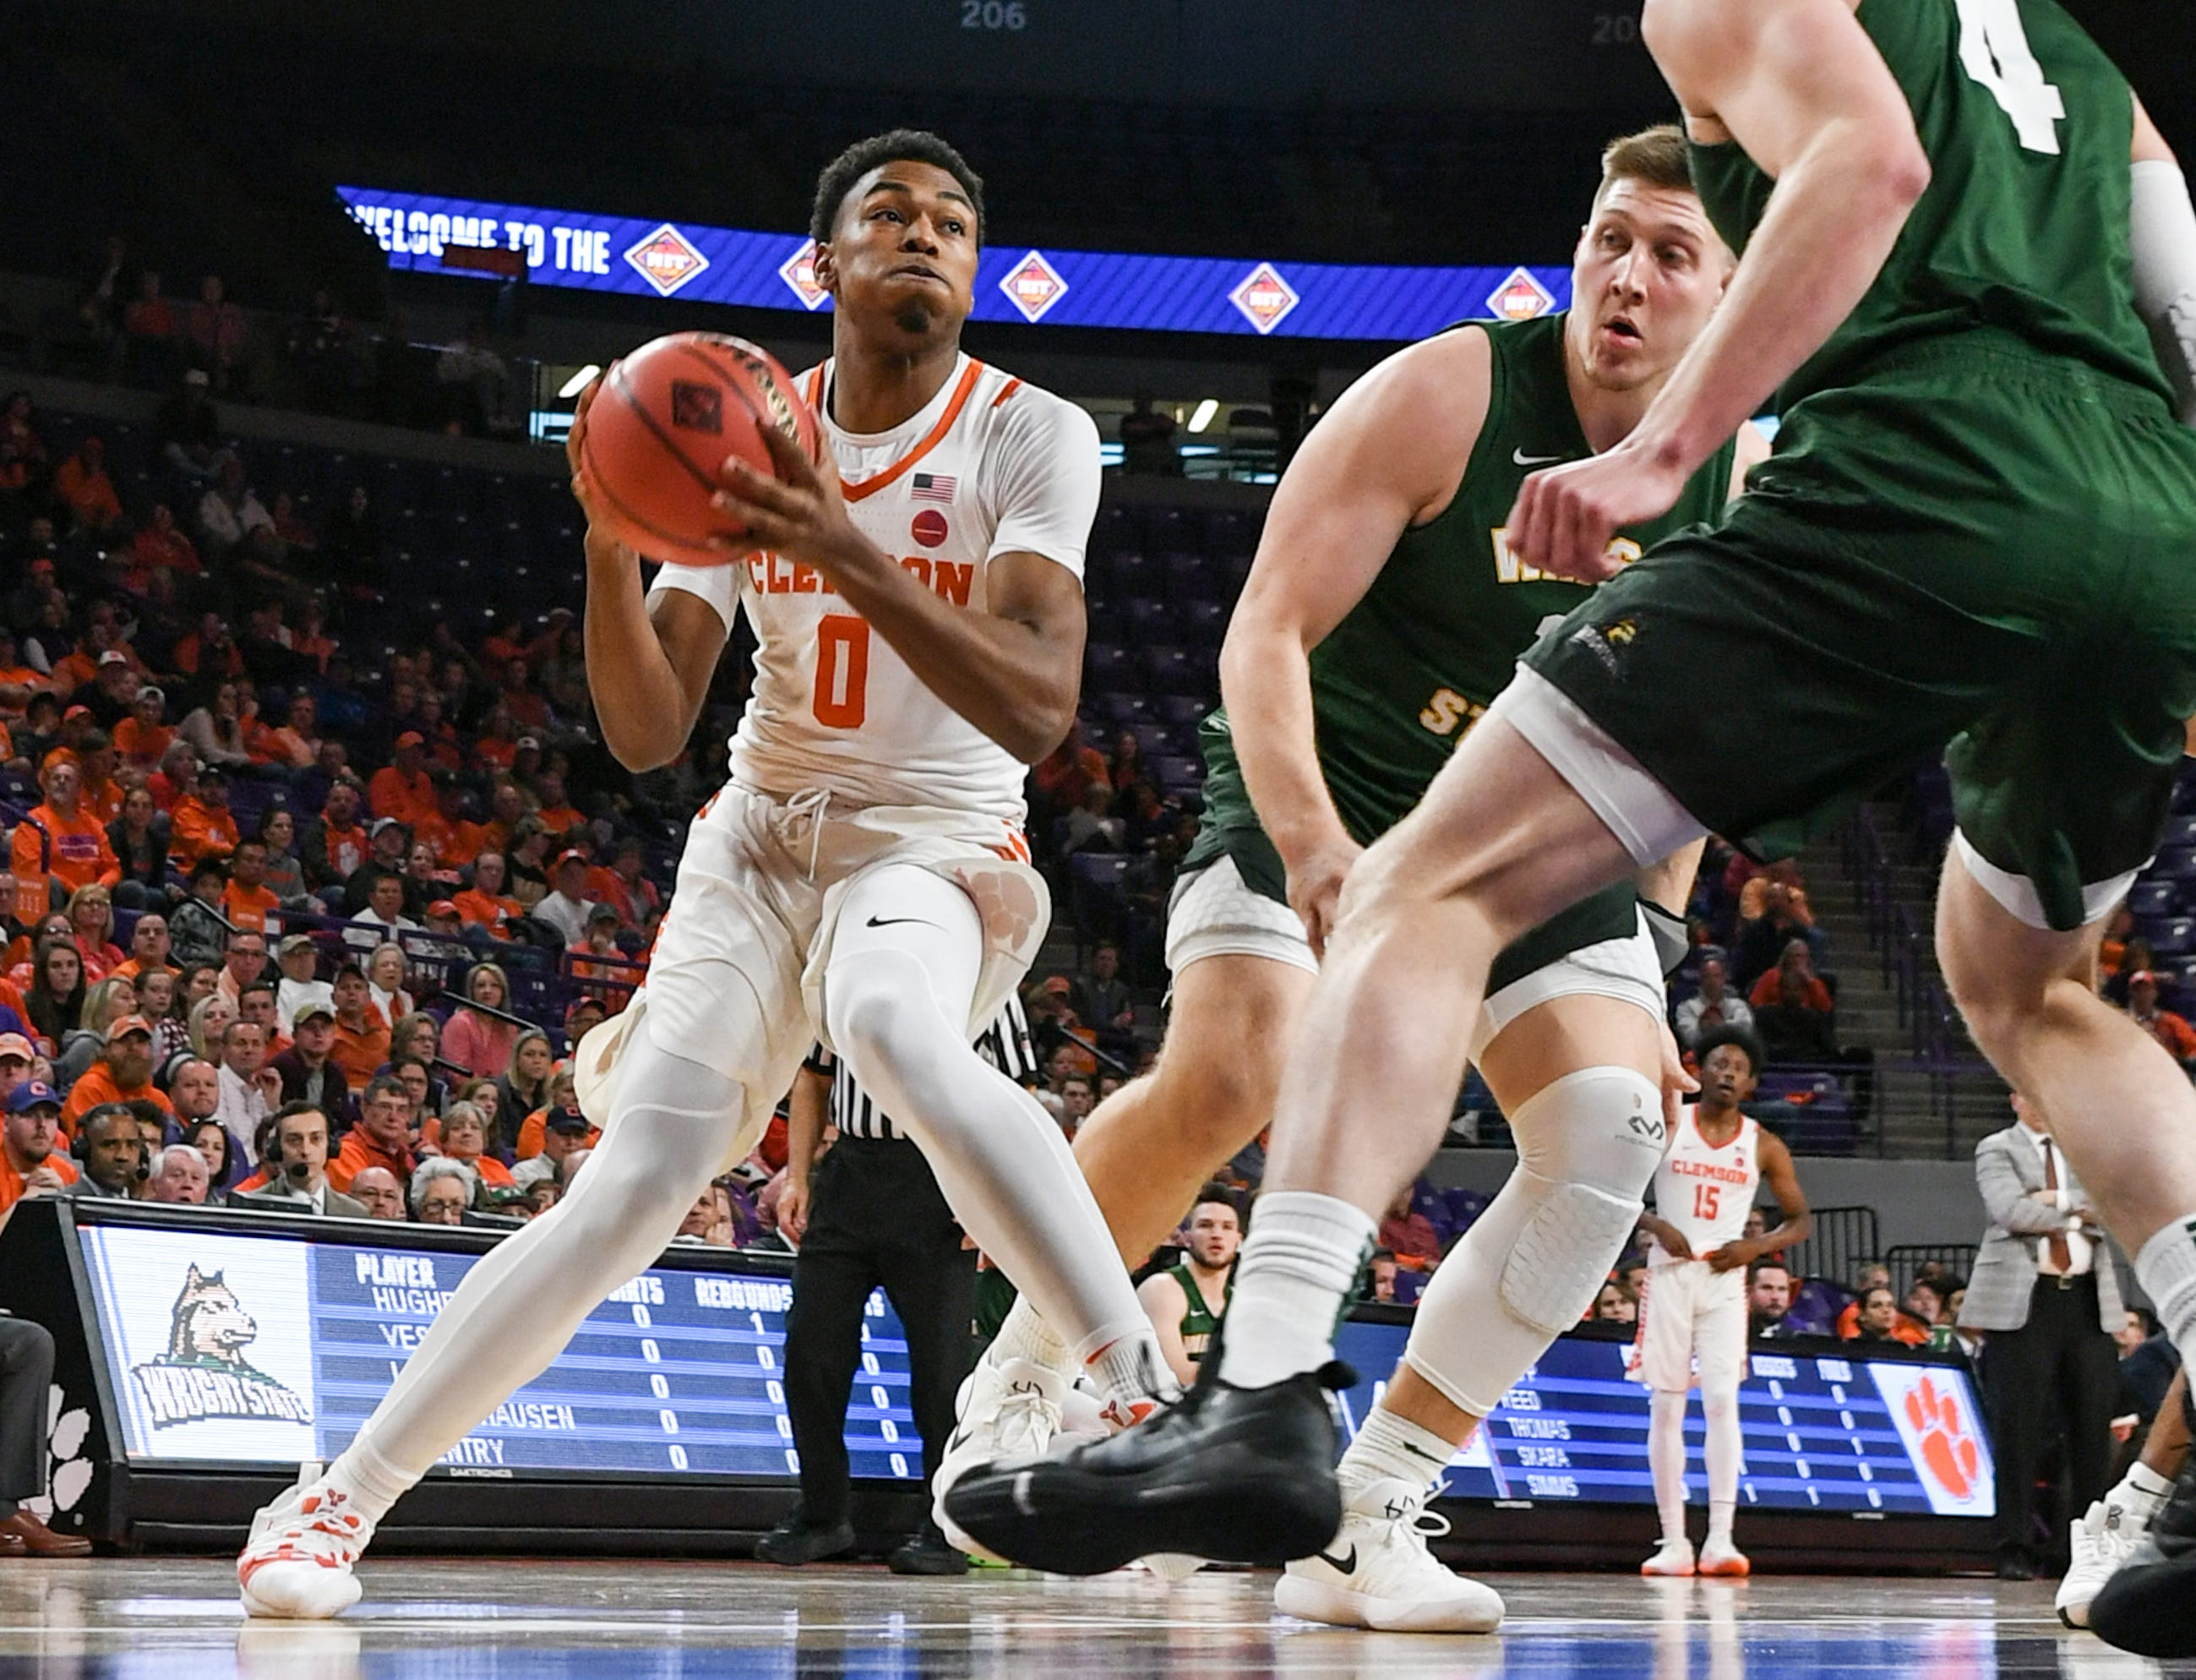 Clemson center Clyde Trapp (0) dribbles Wright State guard Alan Vest(4) during the first half of the NIT at Littlejohn Coliseum in Clemson Tuesday, March 19, 2019.